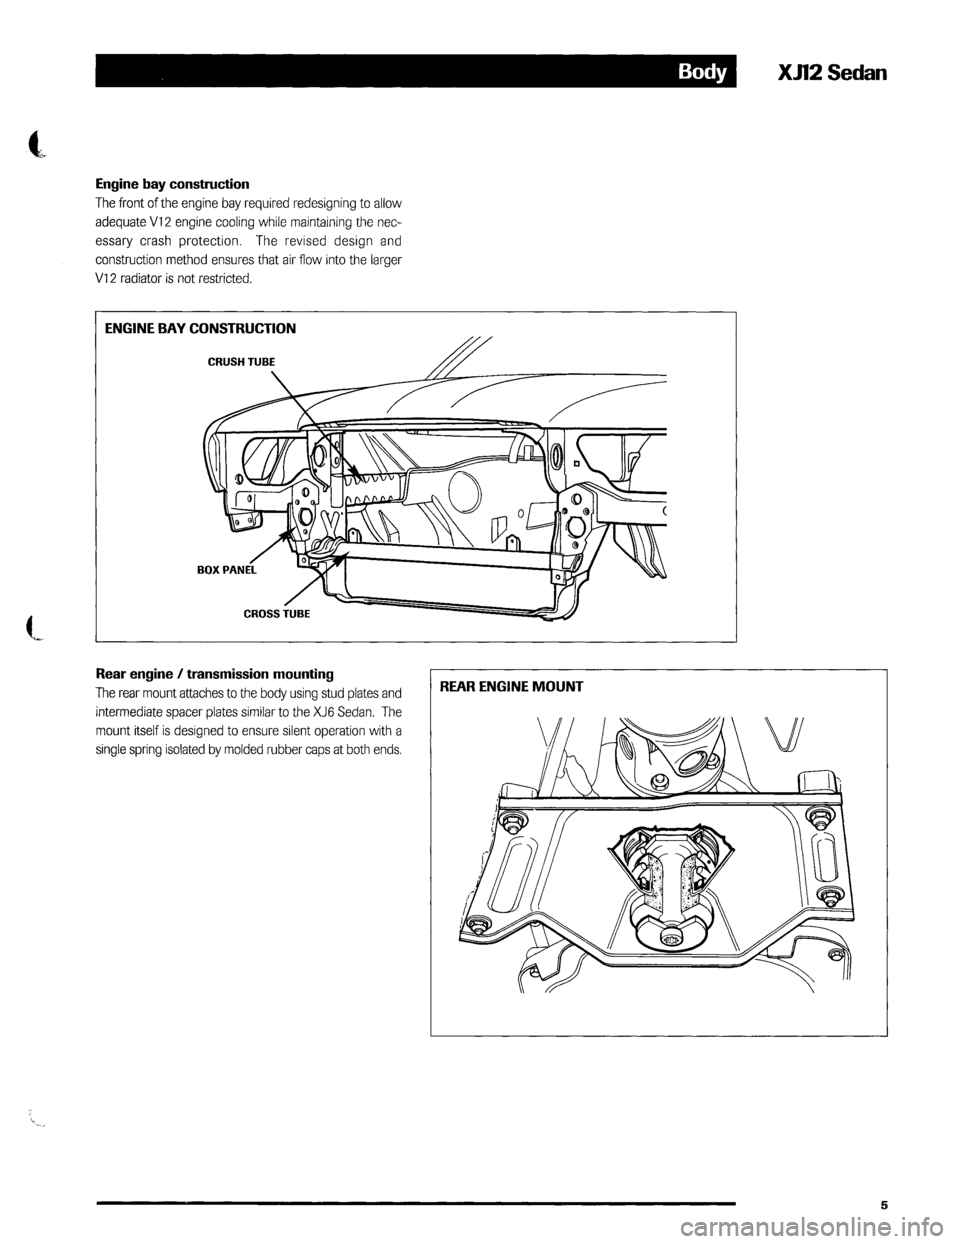 JAGUAR XJ12 1994 2.G Technical Information Manual